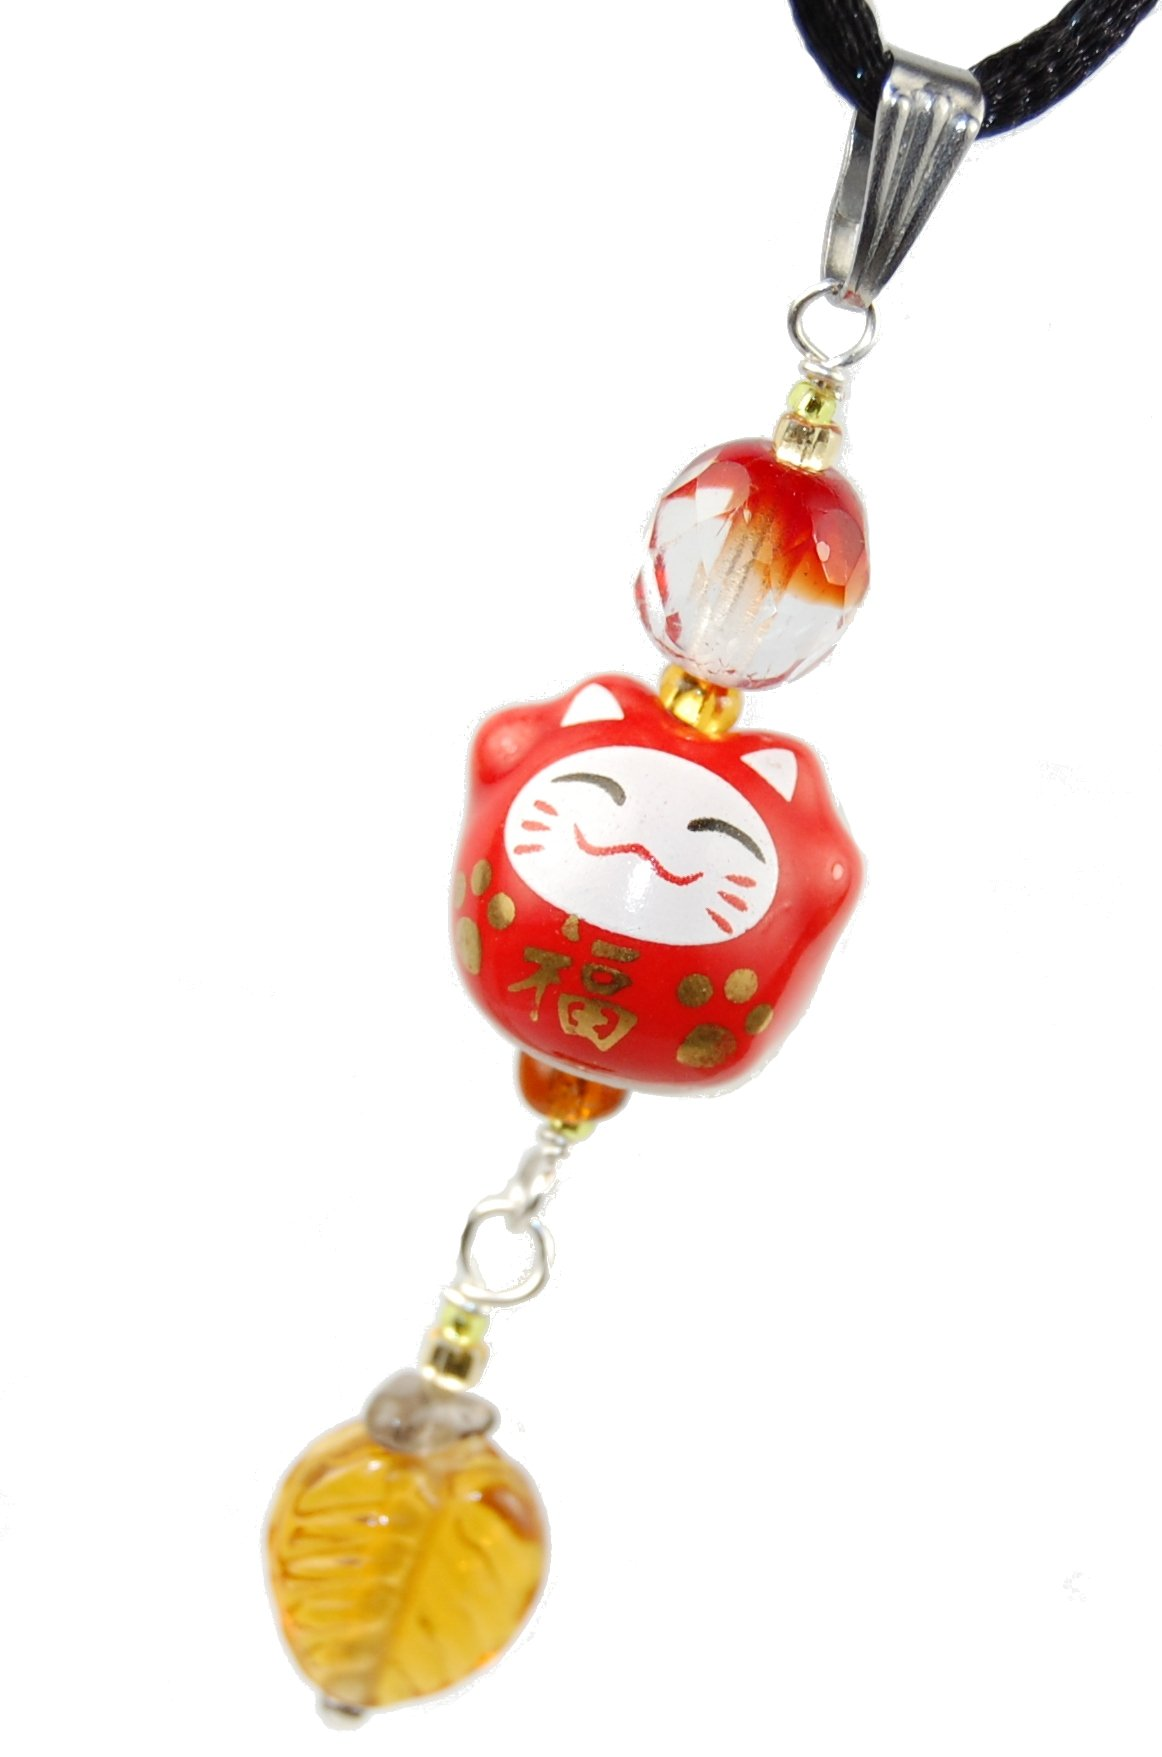 12V StreetGear Ceramic Series - Red Daruma Cat w/Luck Kanji & Leaf : Ceramic & Metallic Gold Maneki Neko Cat Pendant Lucky Charm 1.96'' (50mm) - Black Adjustable Necklace 20-24'', Stainless Steel Bail